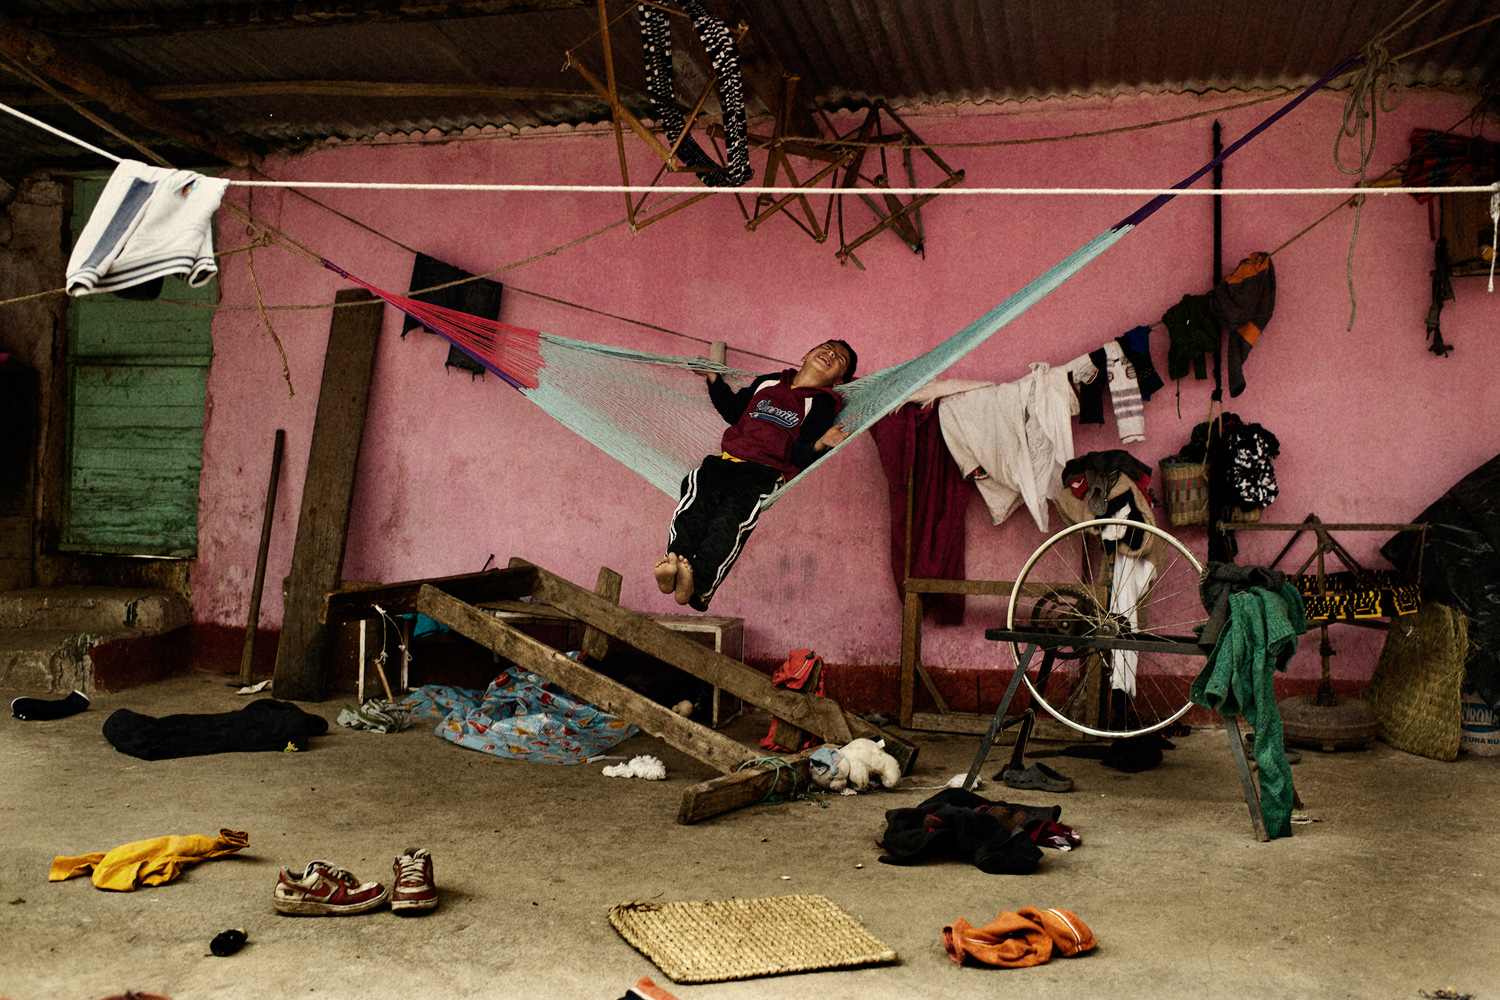 September 26, 2011. A kid playing with a hammock in Aldea Vasca, Guatemala.